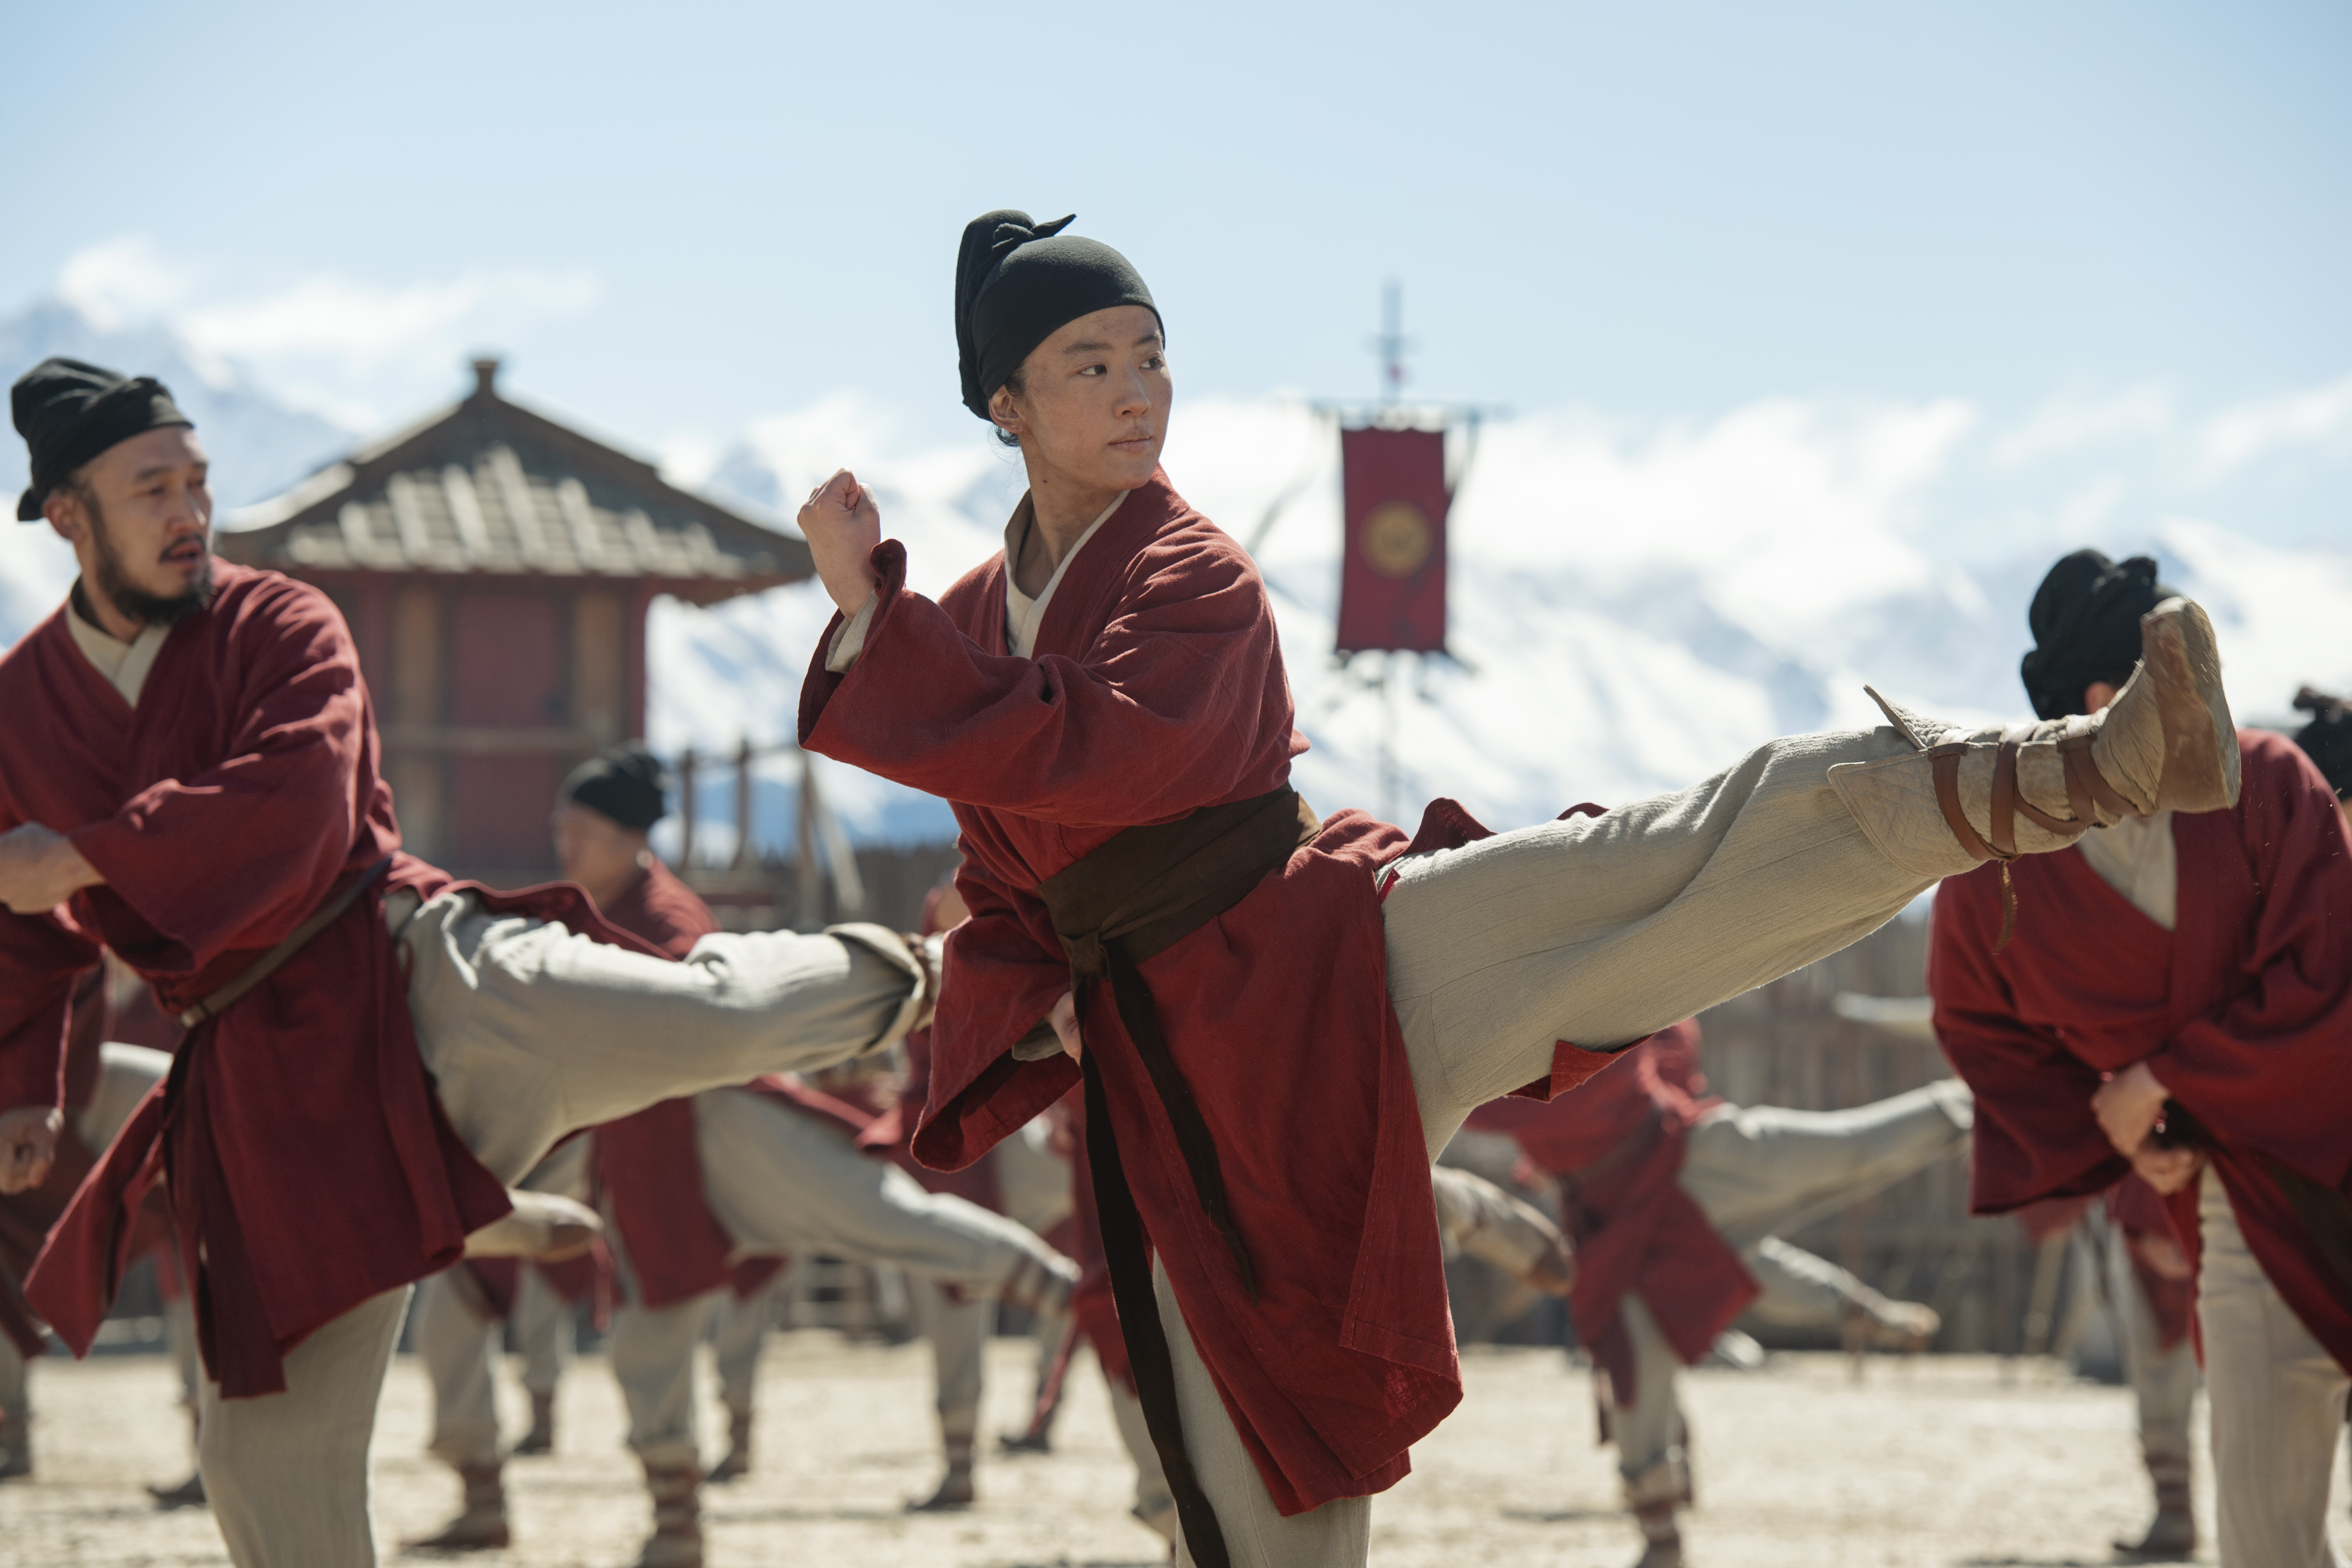 """'Mulan' Going On Disney+ & Theaters In September; CEO Bob Chapek Says Decision Is """"One-Off"""", Not New Windows Model"""